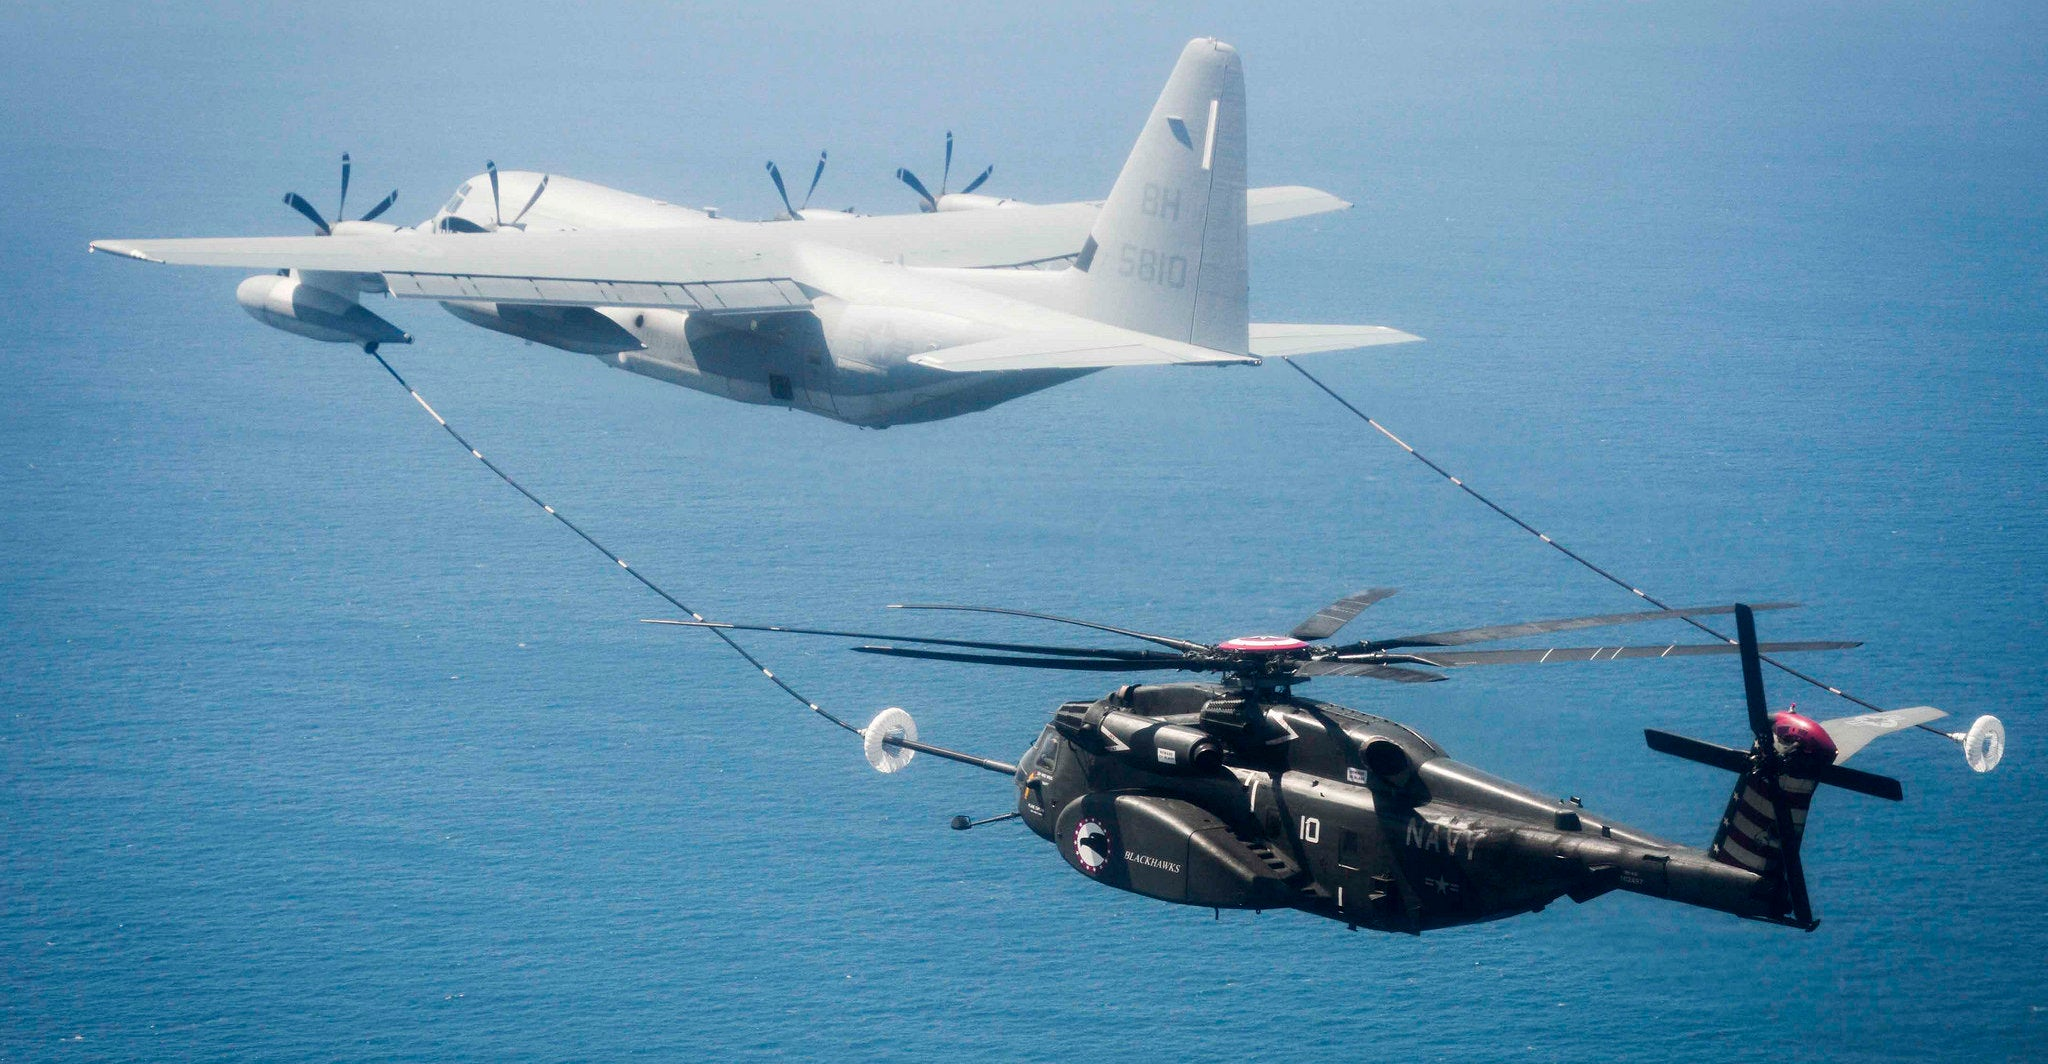 Cool Angle Of A Helicopter Aerial Refuelling Makes It Seem As If The Blades Are Gonna Chop The Line